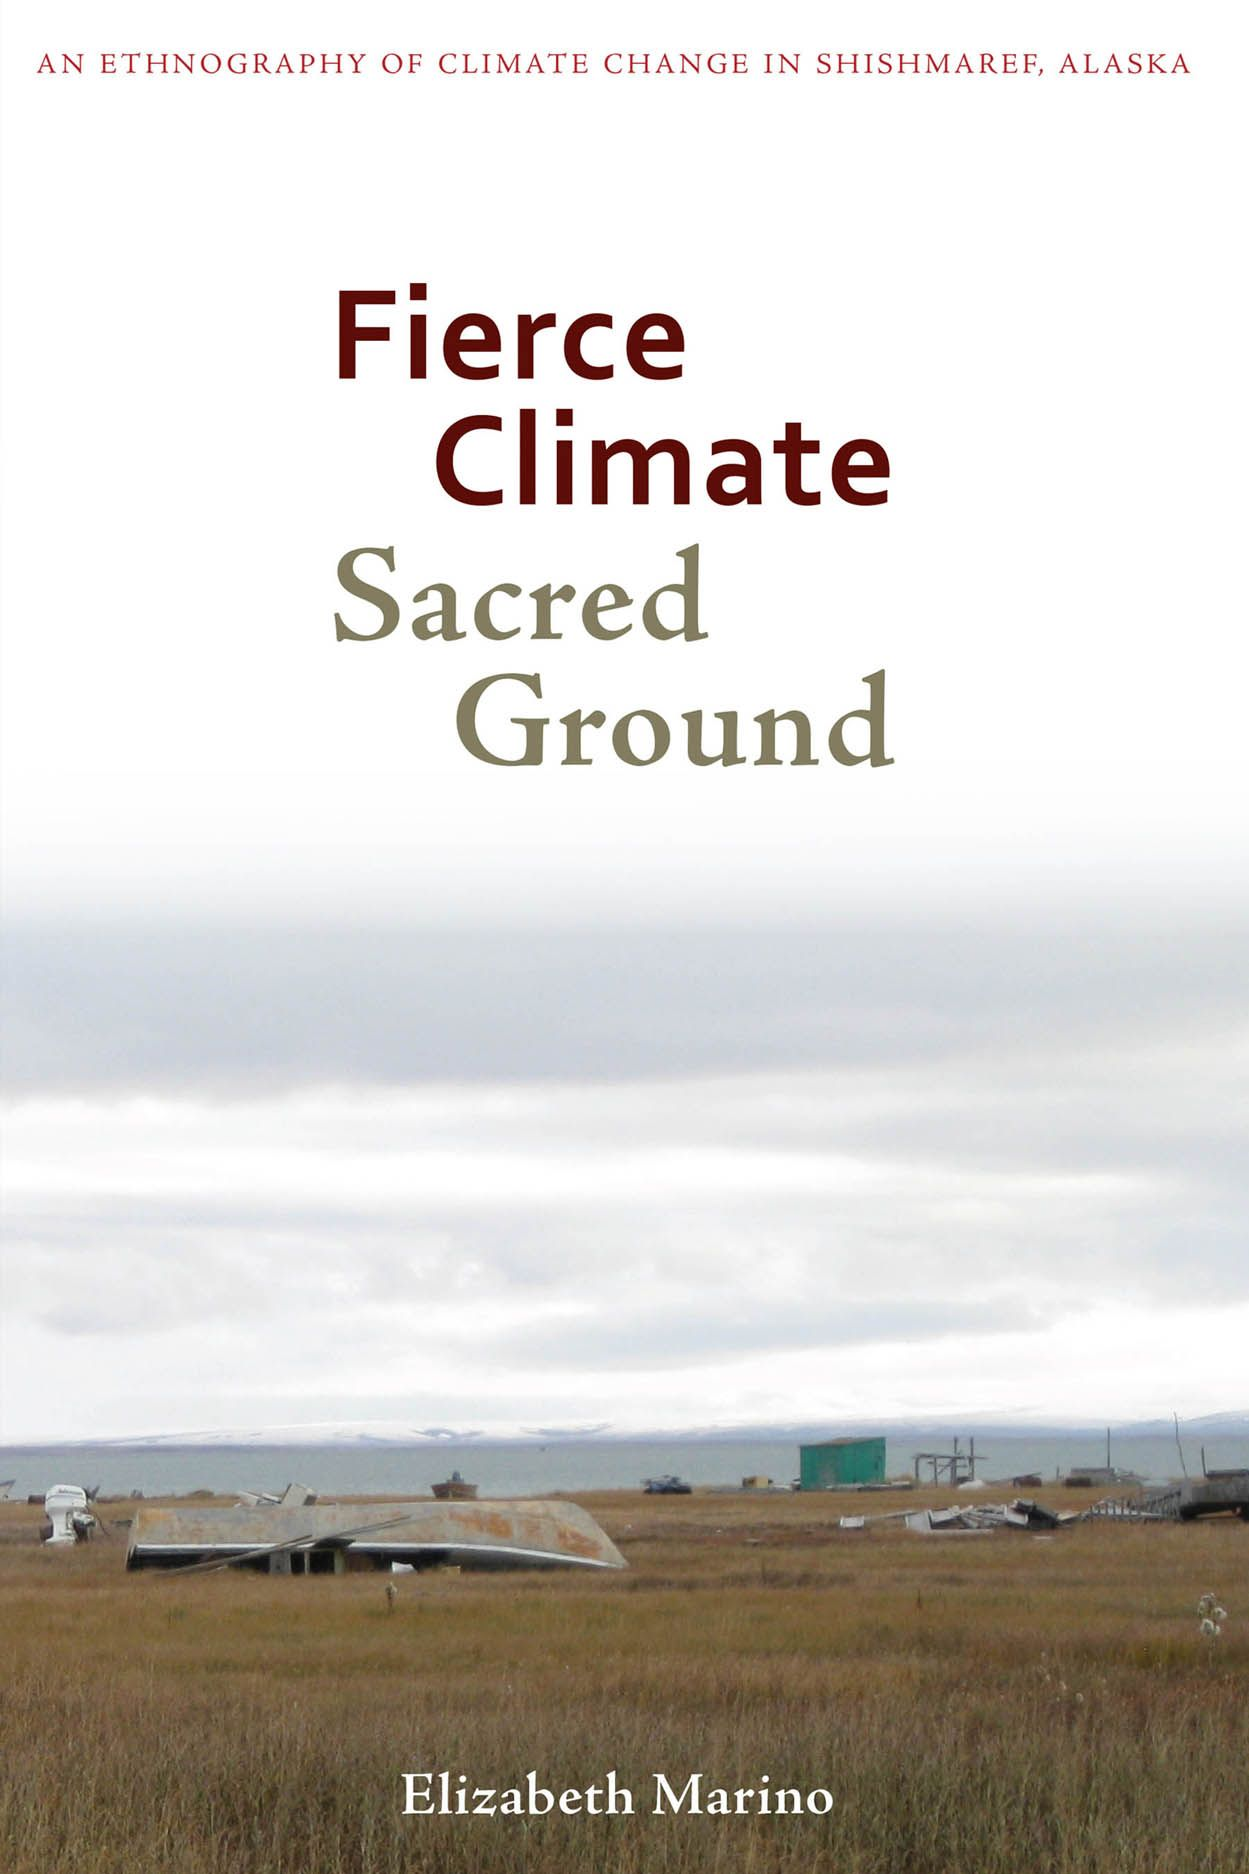 Fierce Climate, Sacred Ground